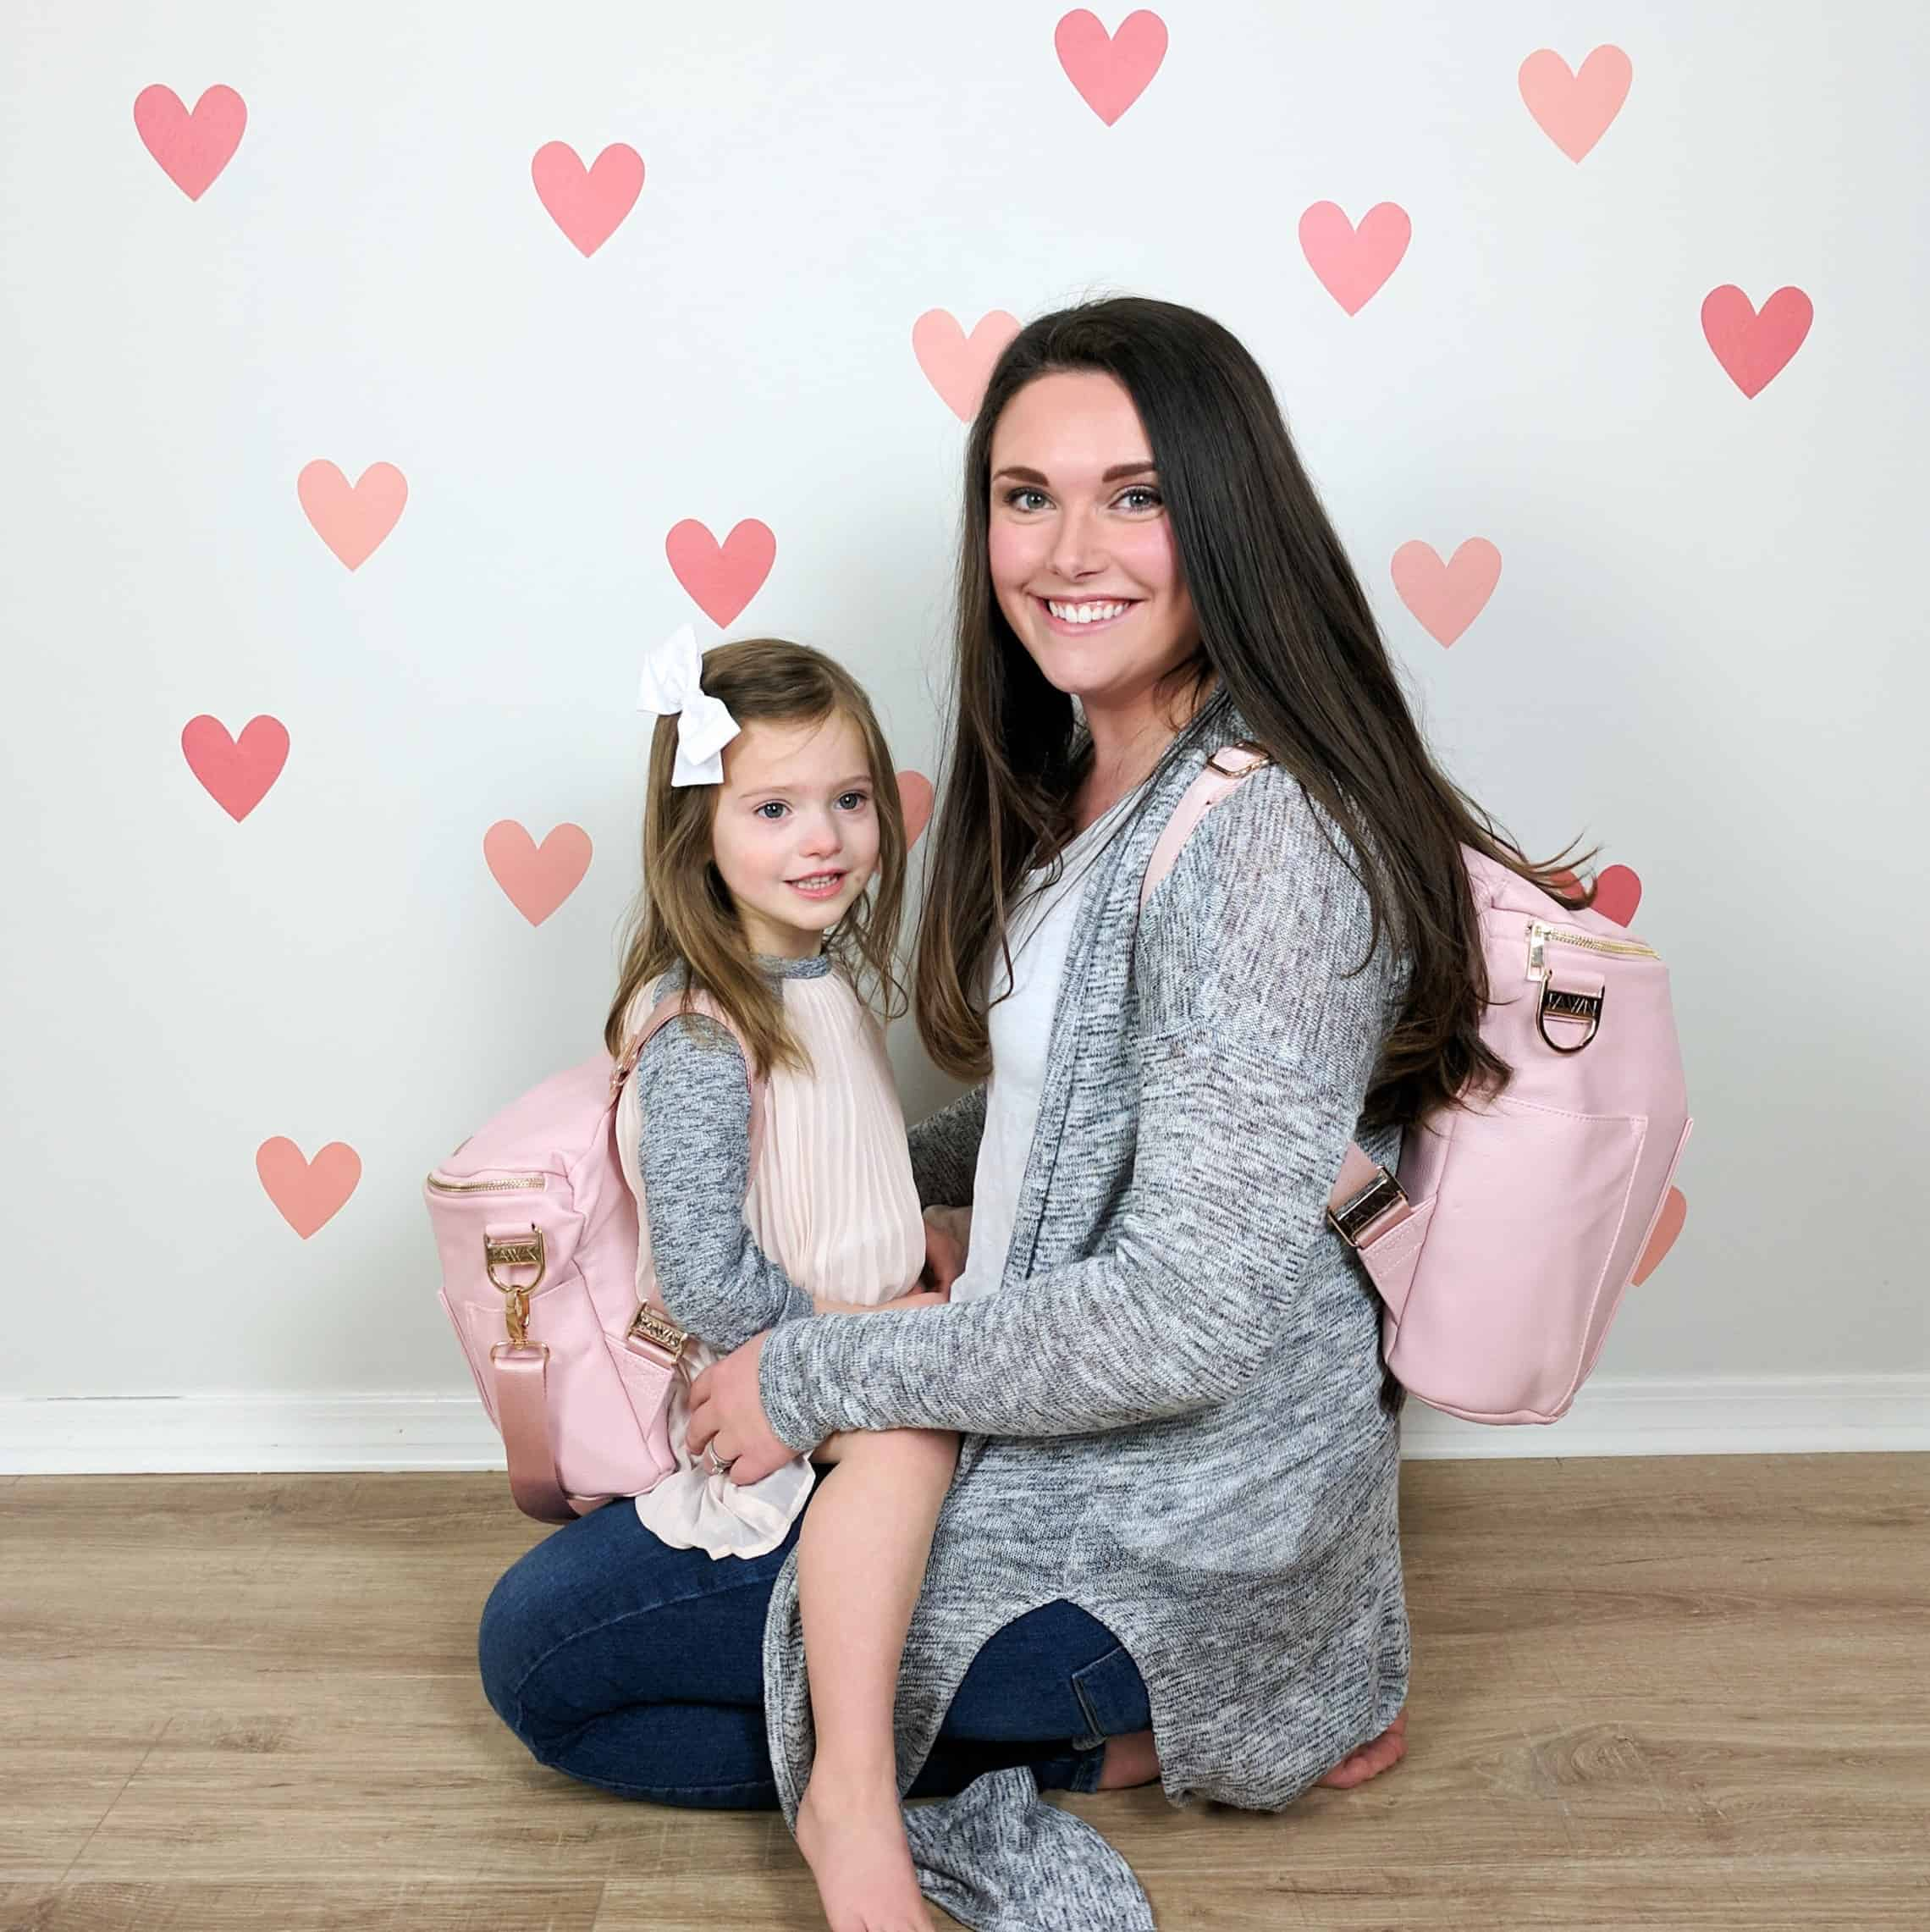 mom and daughter in matching fawn design diaper bags against pink heart wall